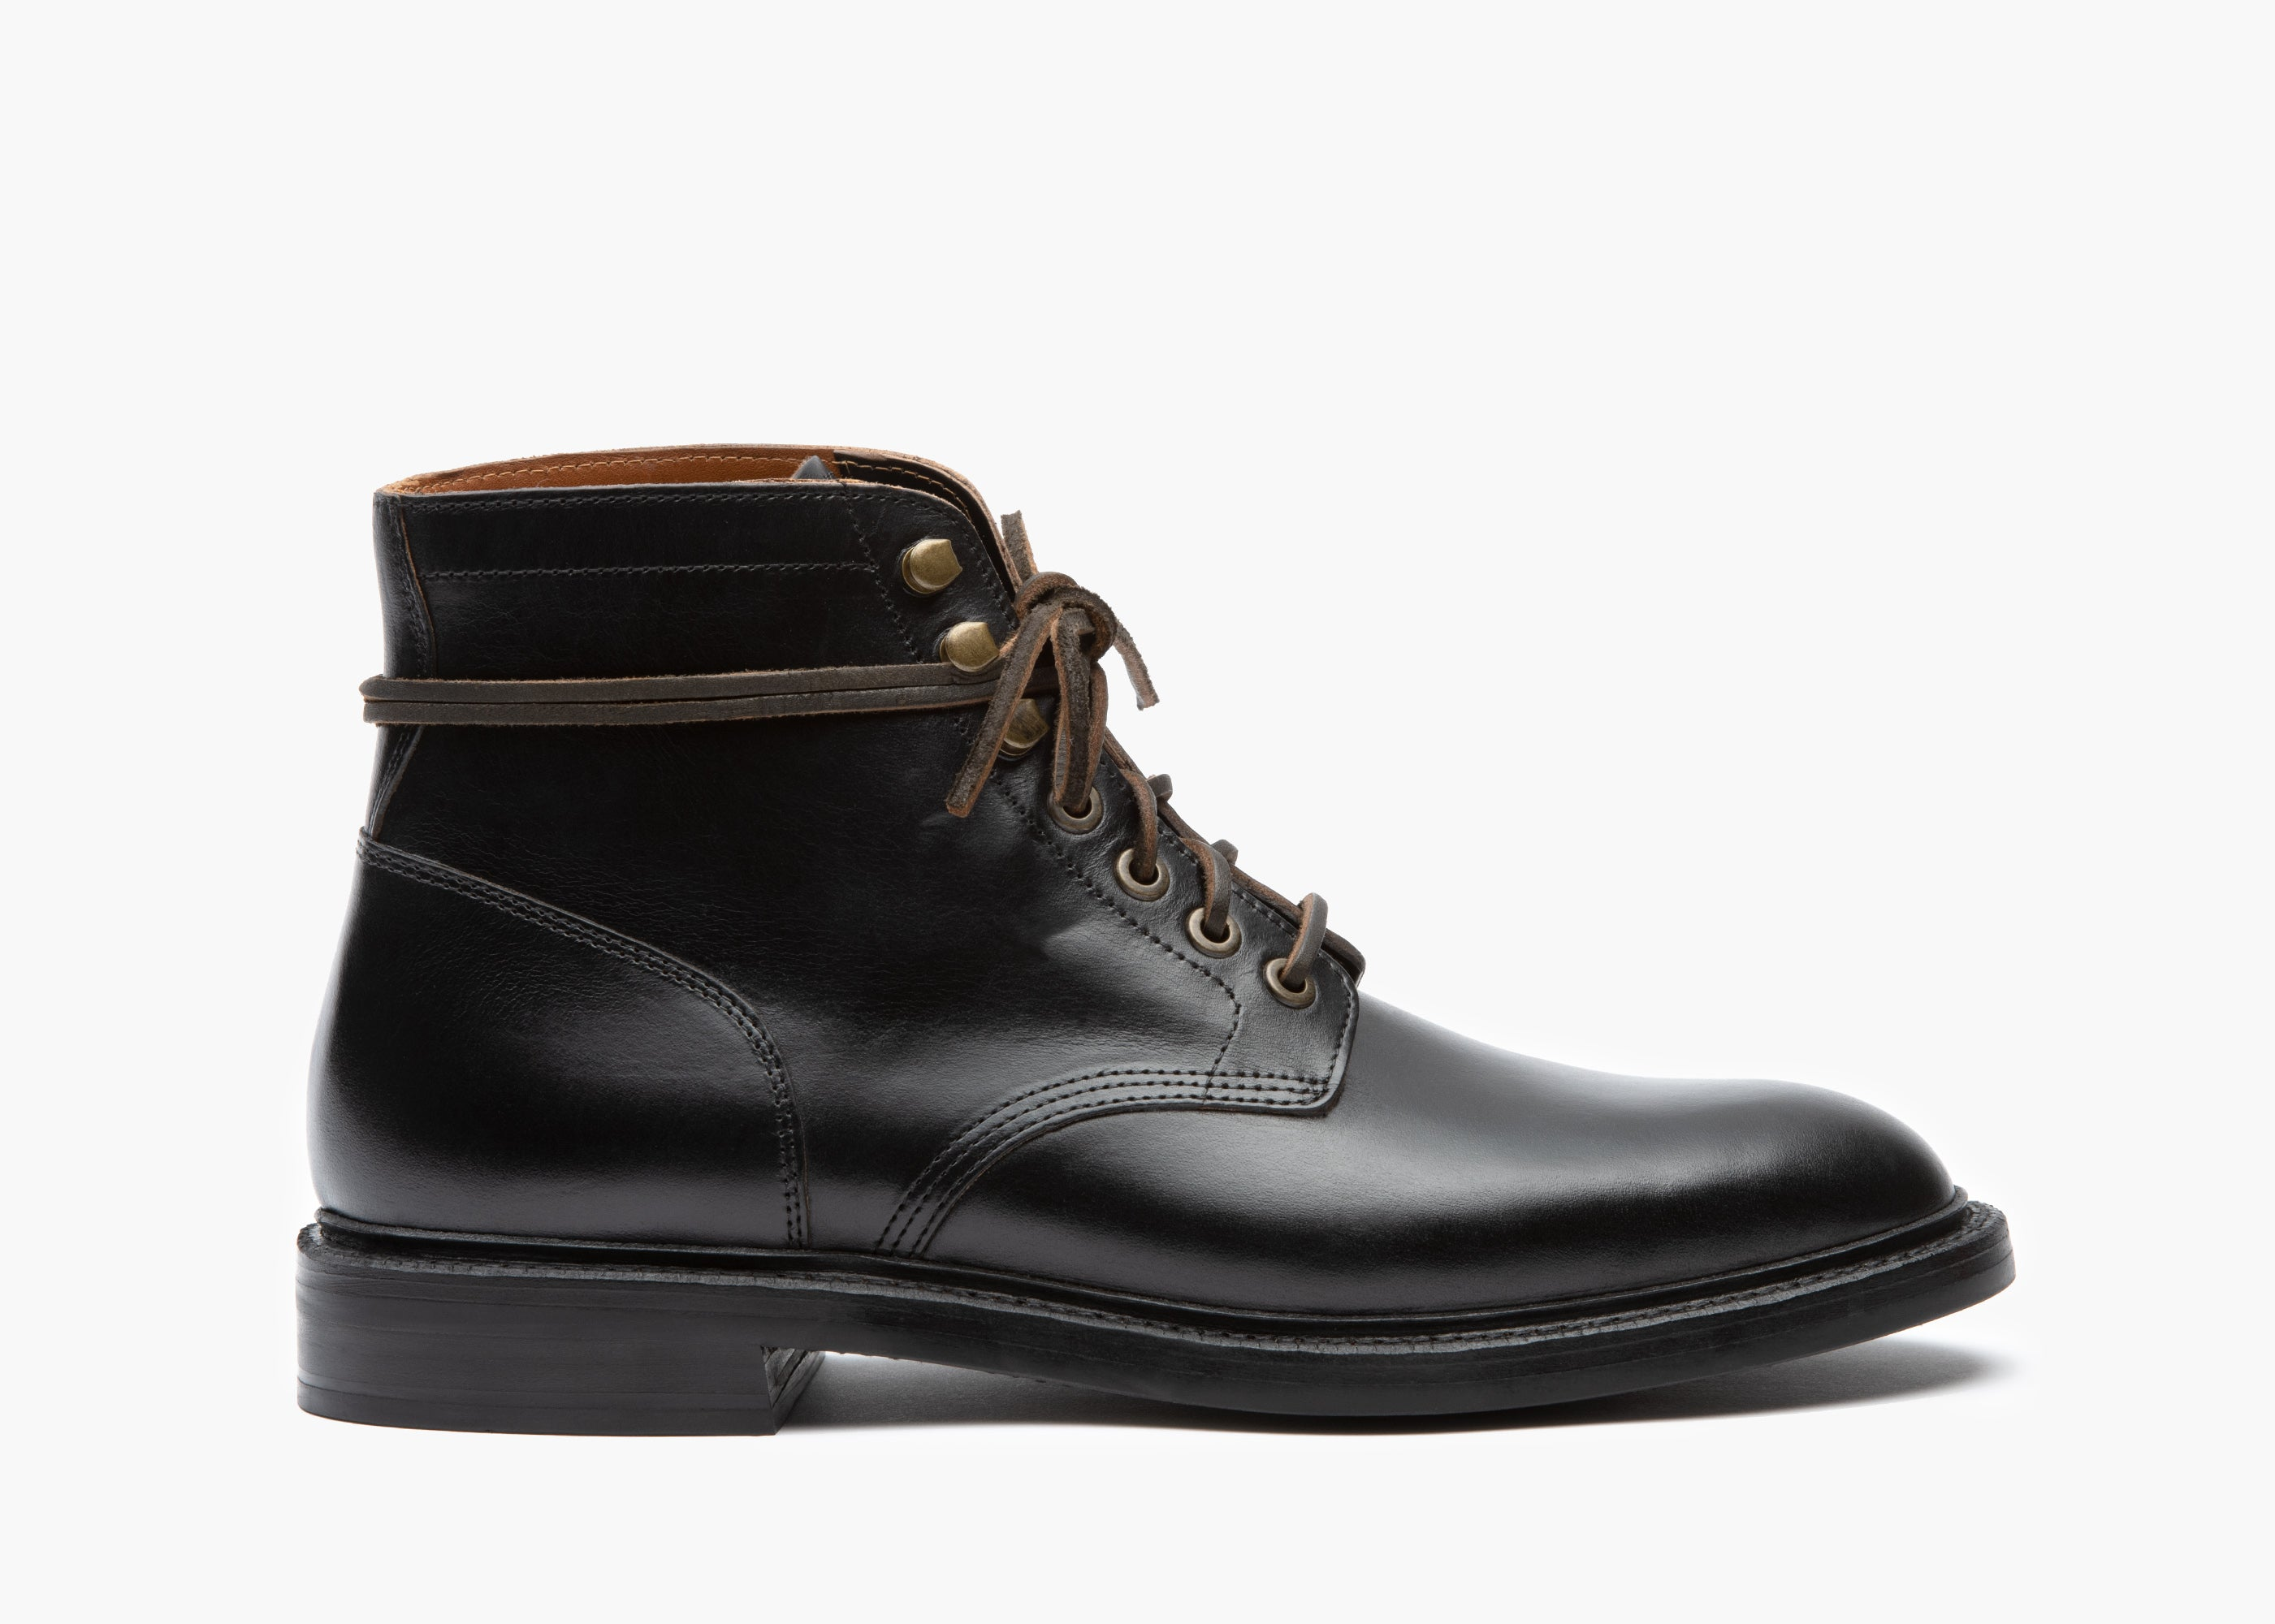 d0e3a0911717a Diesel Boot Black Chromexcel Rubber Sole - Grant Stone